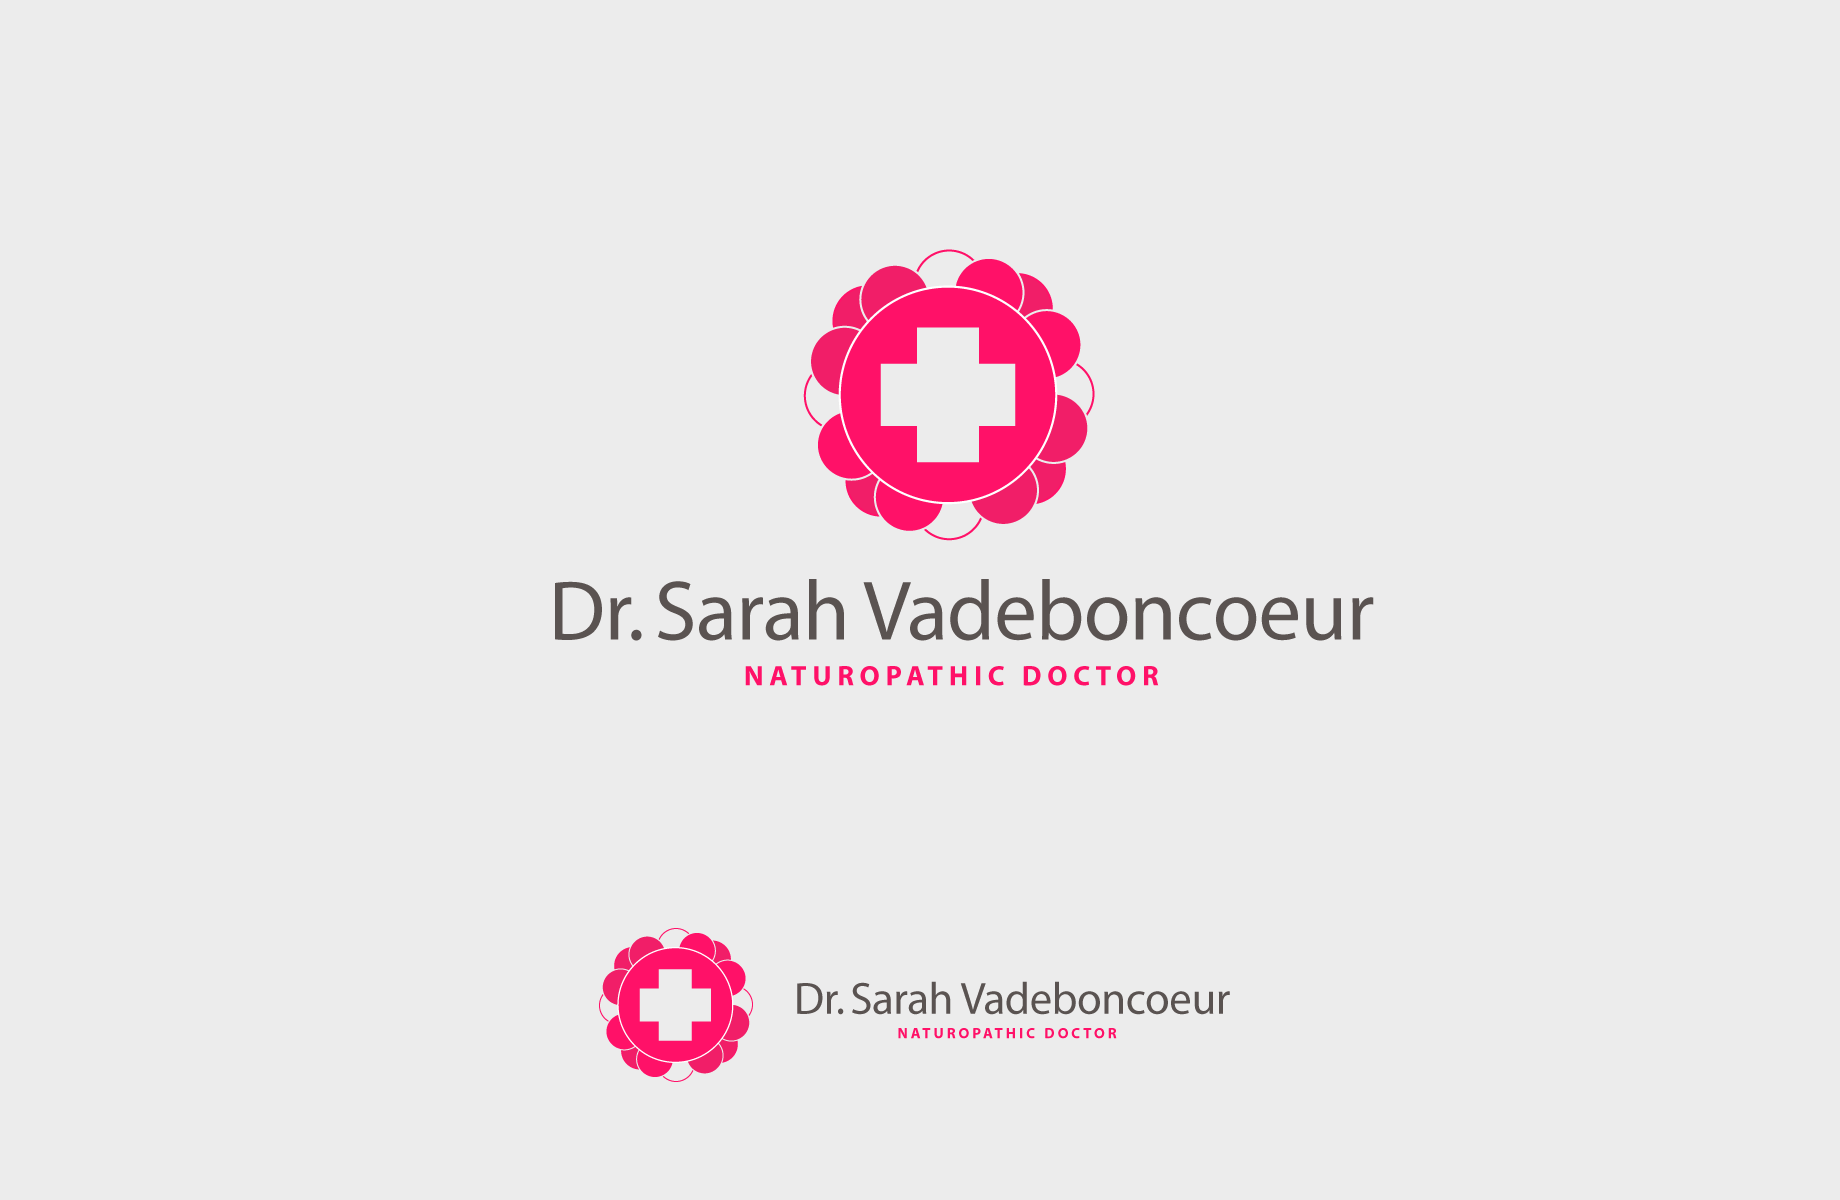 Logo Design by Jan Chua - Entry No. 94 in the Logo Design Contest New Logo Design for Dr. Sarah Vadeboncoeur, Naturopathic Doctor.